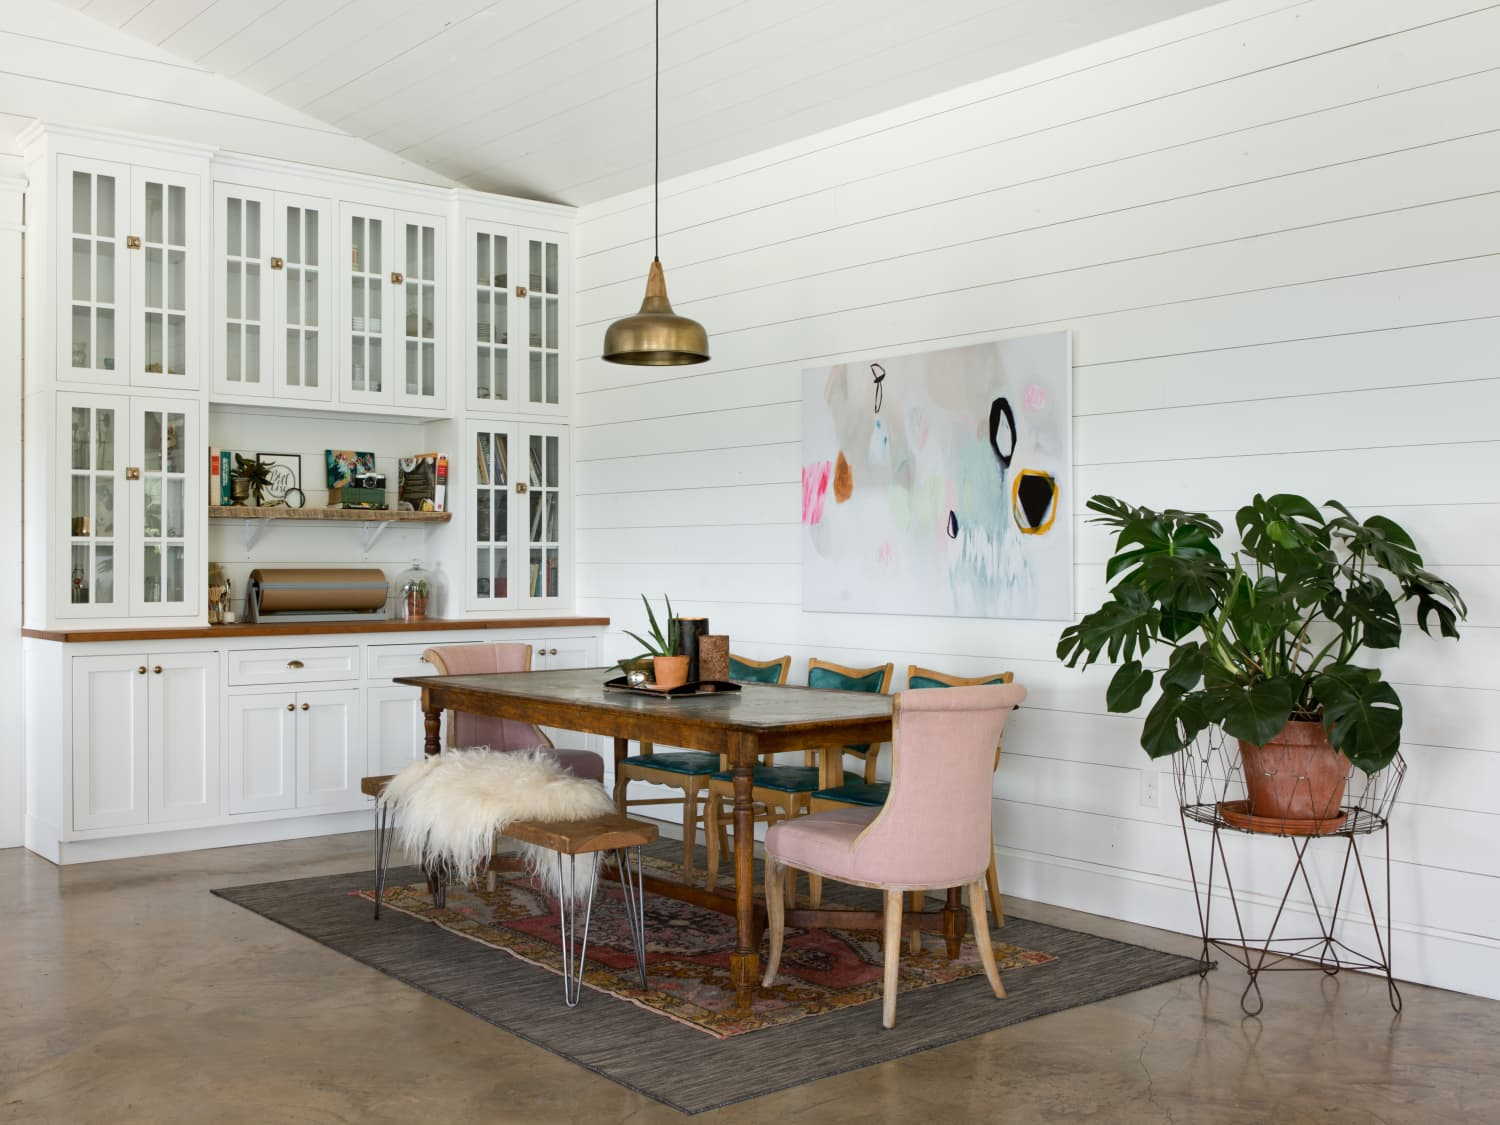 Where To Buy Affordable Dining Room Furniture 7 Budget Friendly Stores Kitchn